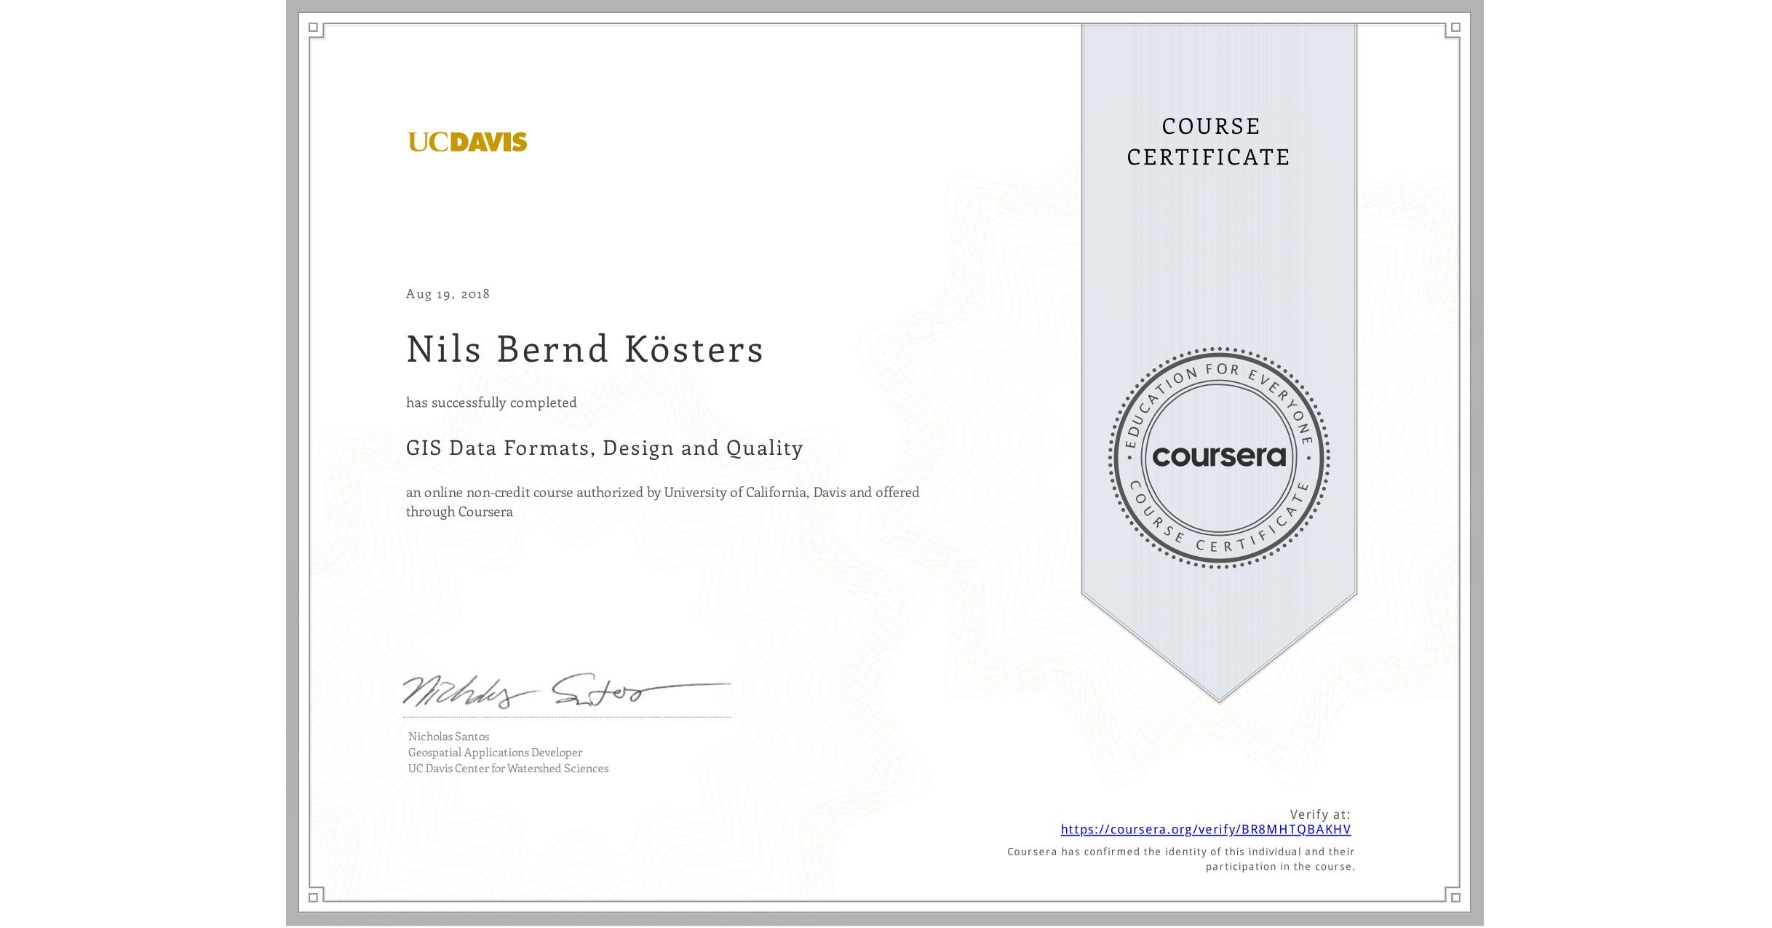 View certificate for Nils Bernd Kösters, GIS Data Formats, Design and Quality, an online non-credit course authorized by University of California, Davis and offered through Coursera